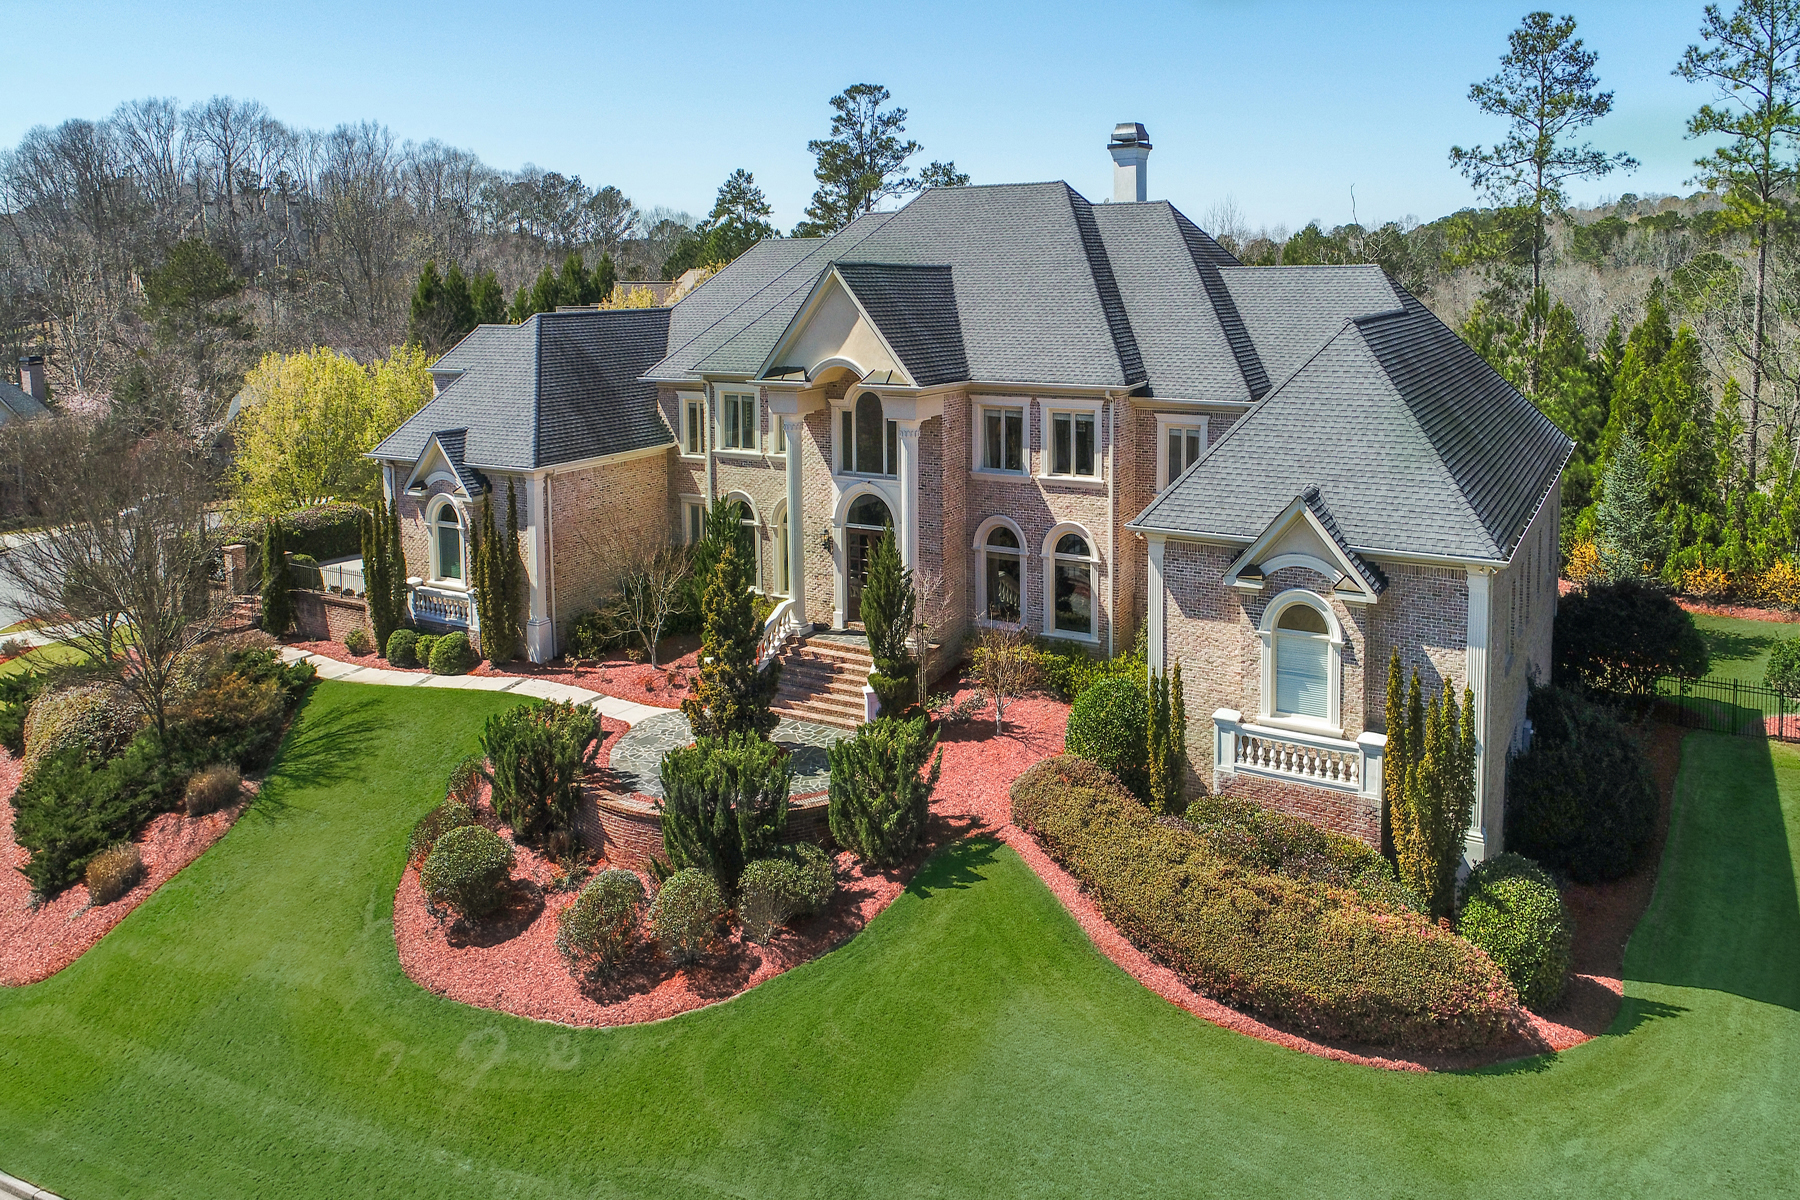 Single Family Home for Sale at Luxurious Sandy Springs Estate 435 Verdi Lane Sandy Springs, Georgia 30328 United States